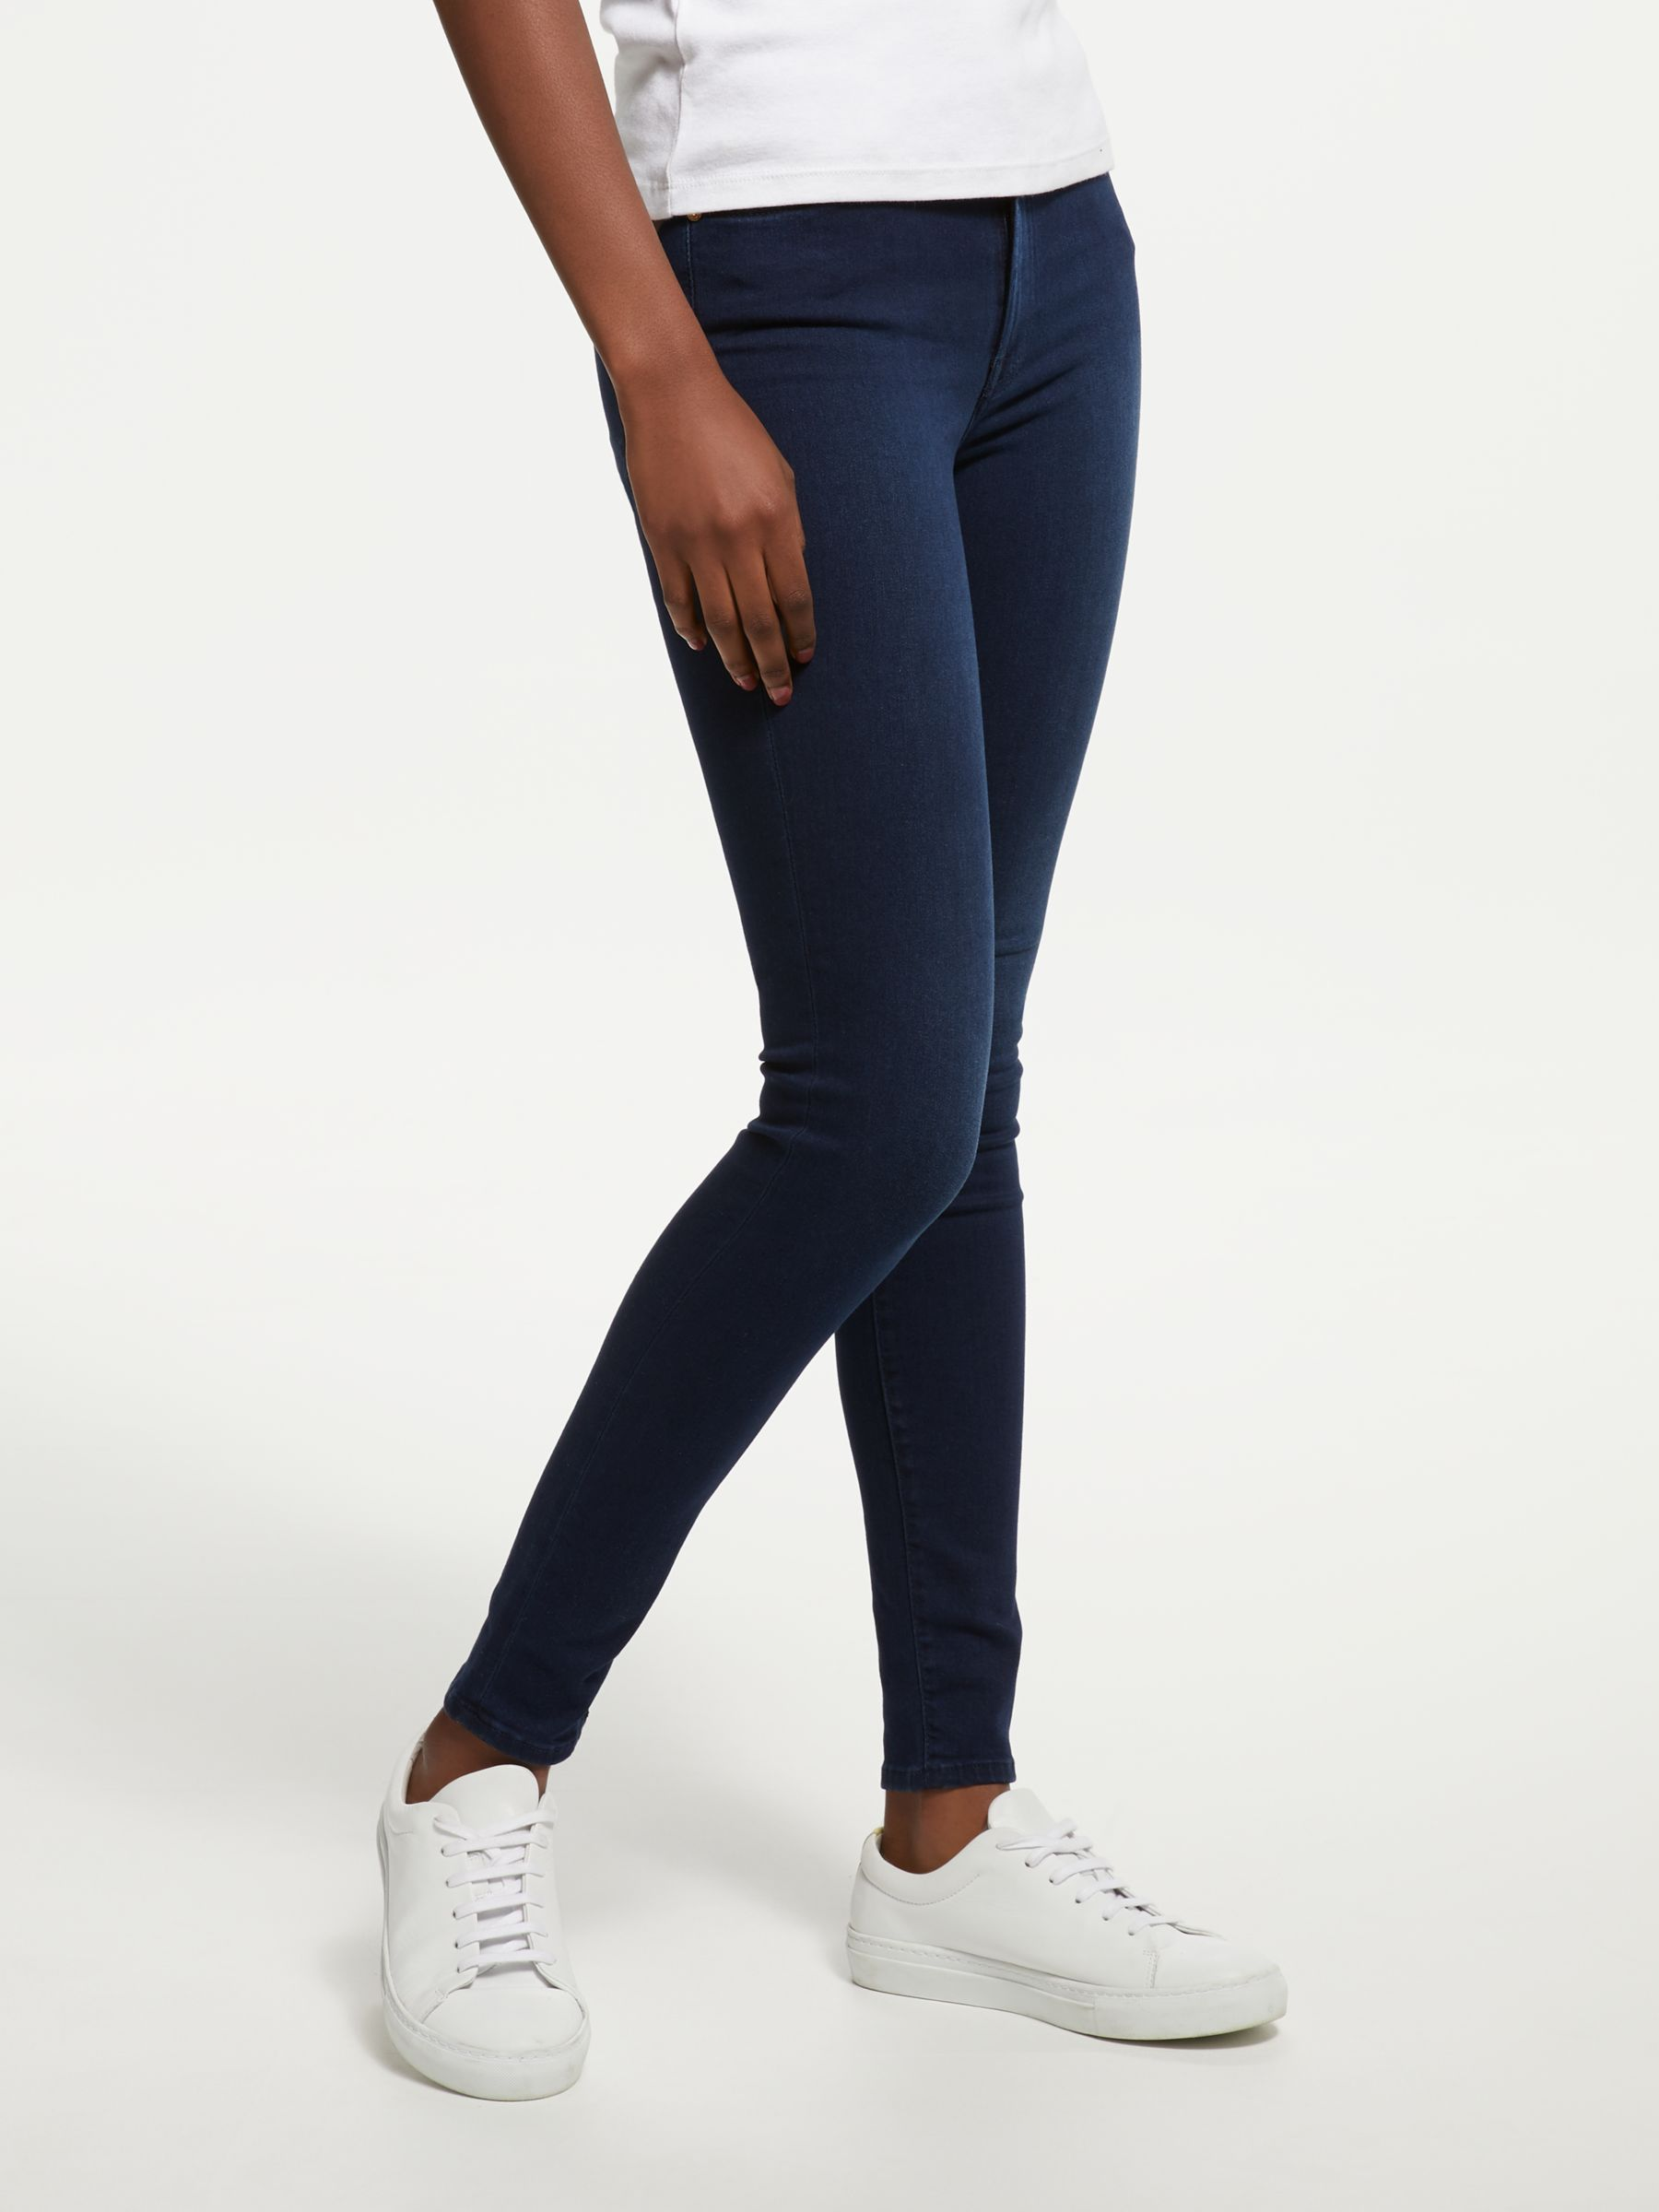 7 For All Mankind 7 For All Mankind Slim Illusion Luxe Jeans, Rich Indigo